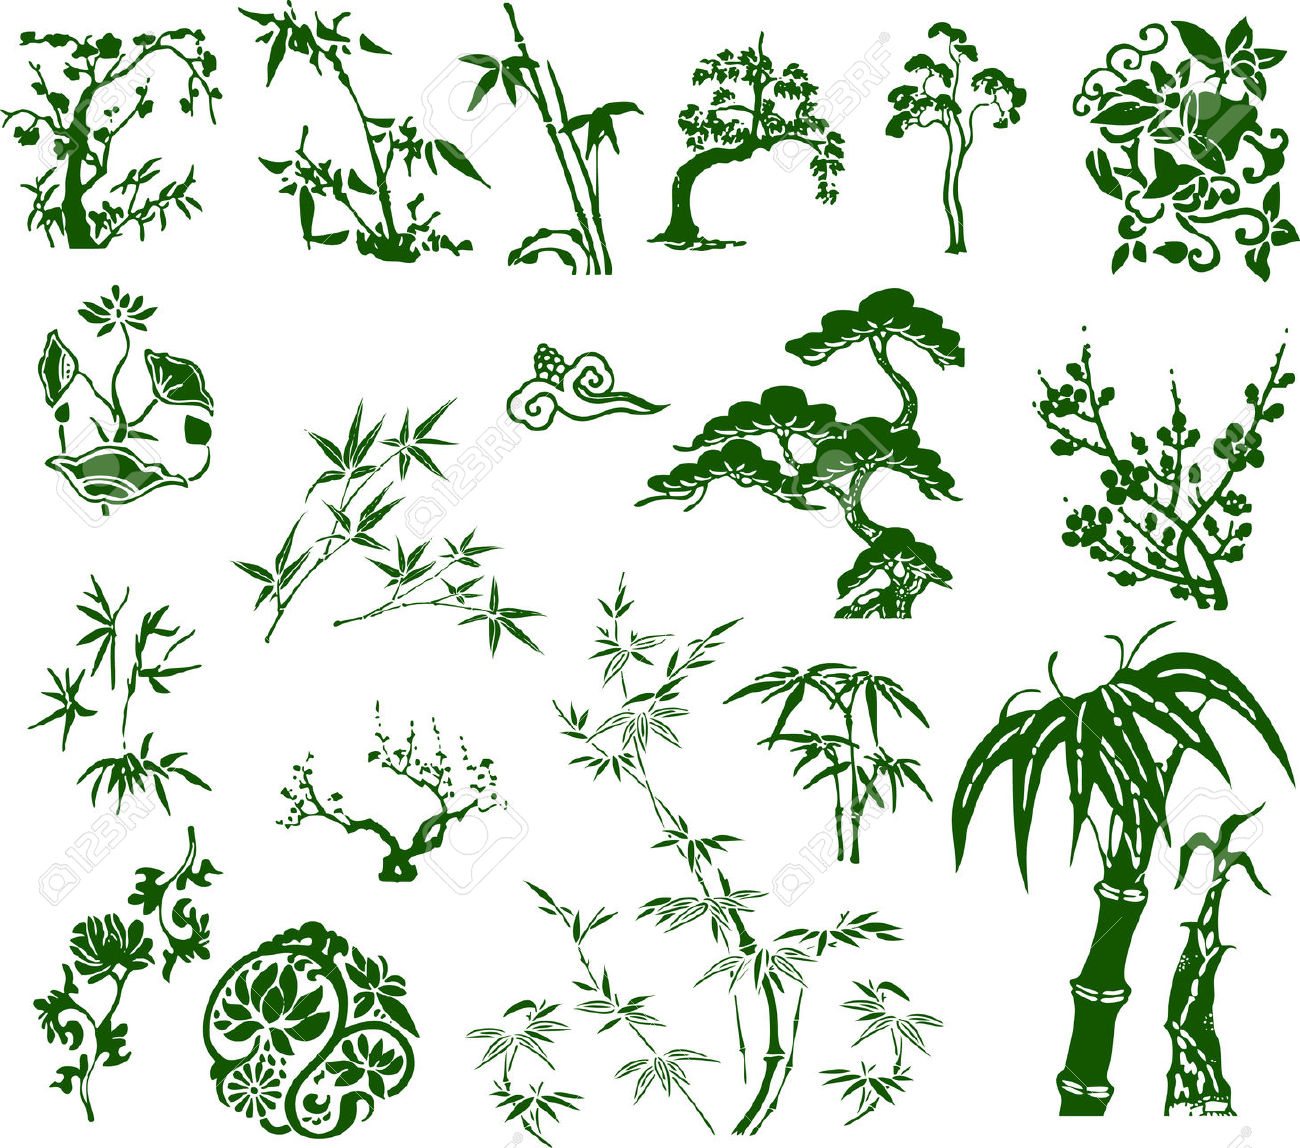 5 Latest Bamboo Tree Tattoo Designs Samples And Ideas